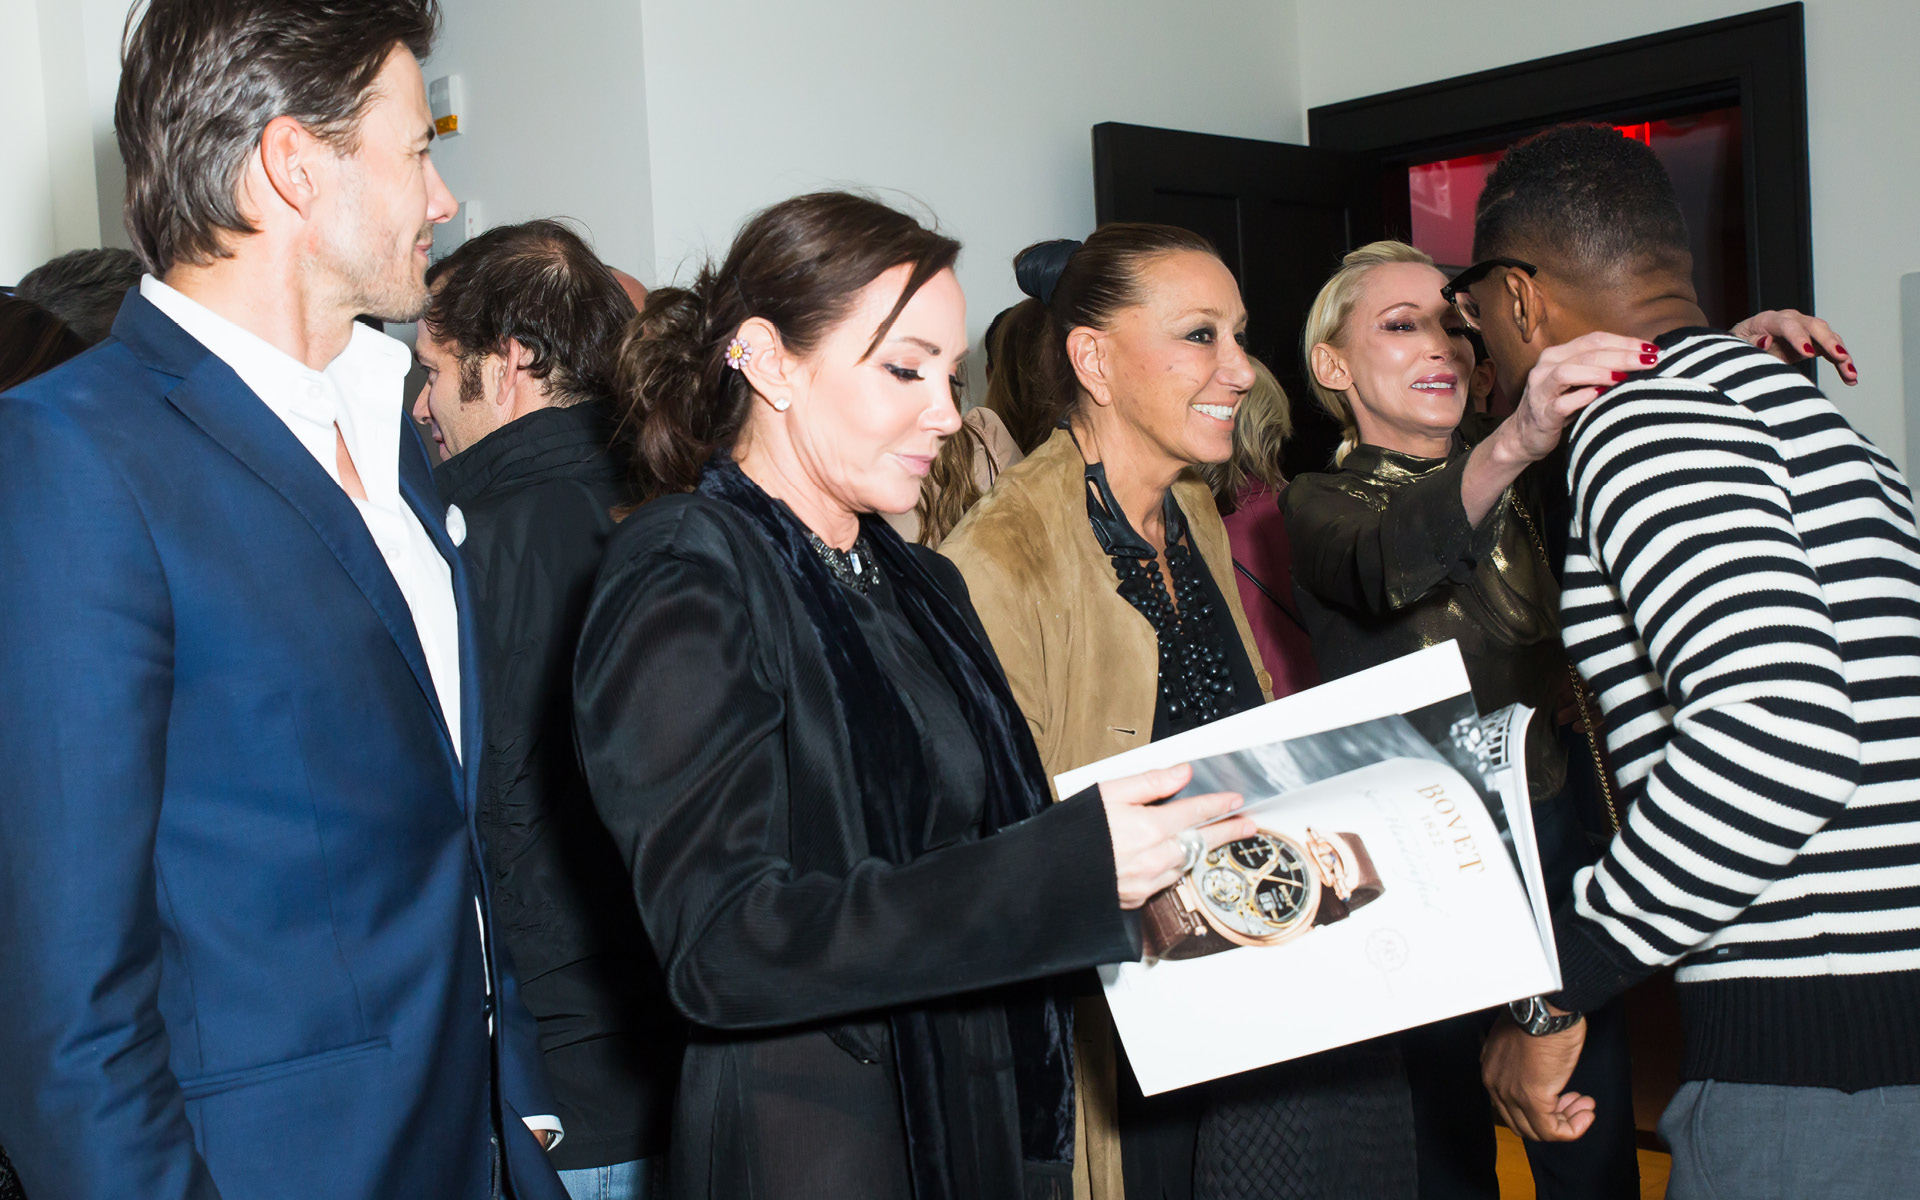 Alex Ludqvist, Donna Karan, Maxwell, Camilla Olsson, Miguel Forbs, and Jackie Astier, at Edition Hotel, celebrating Maxwell birthday and Spirit & Flesh magazine cover story by Mark Seliger